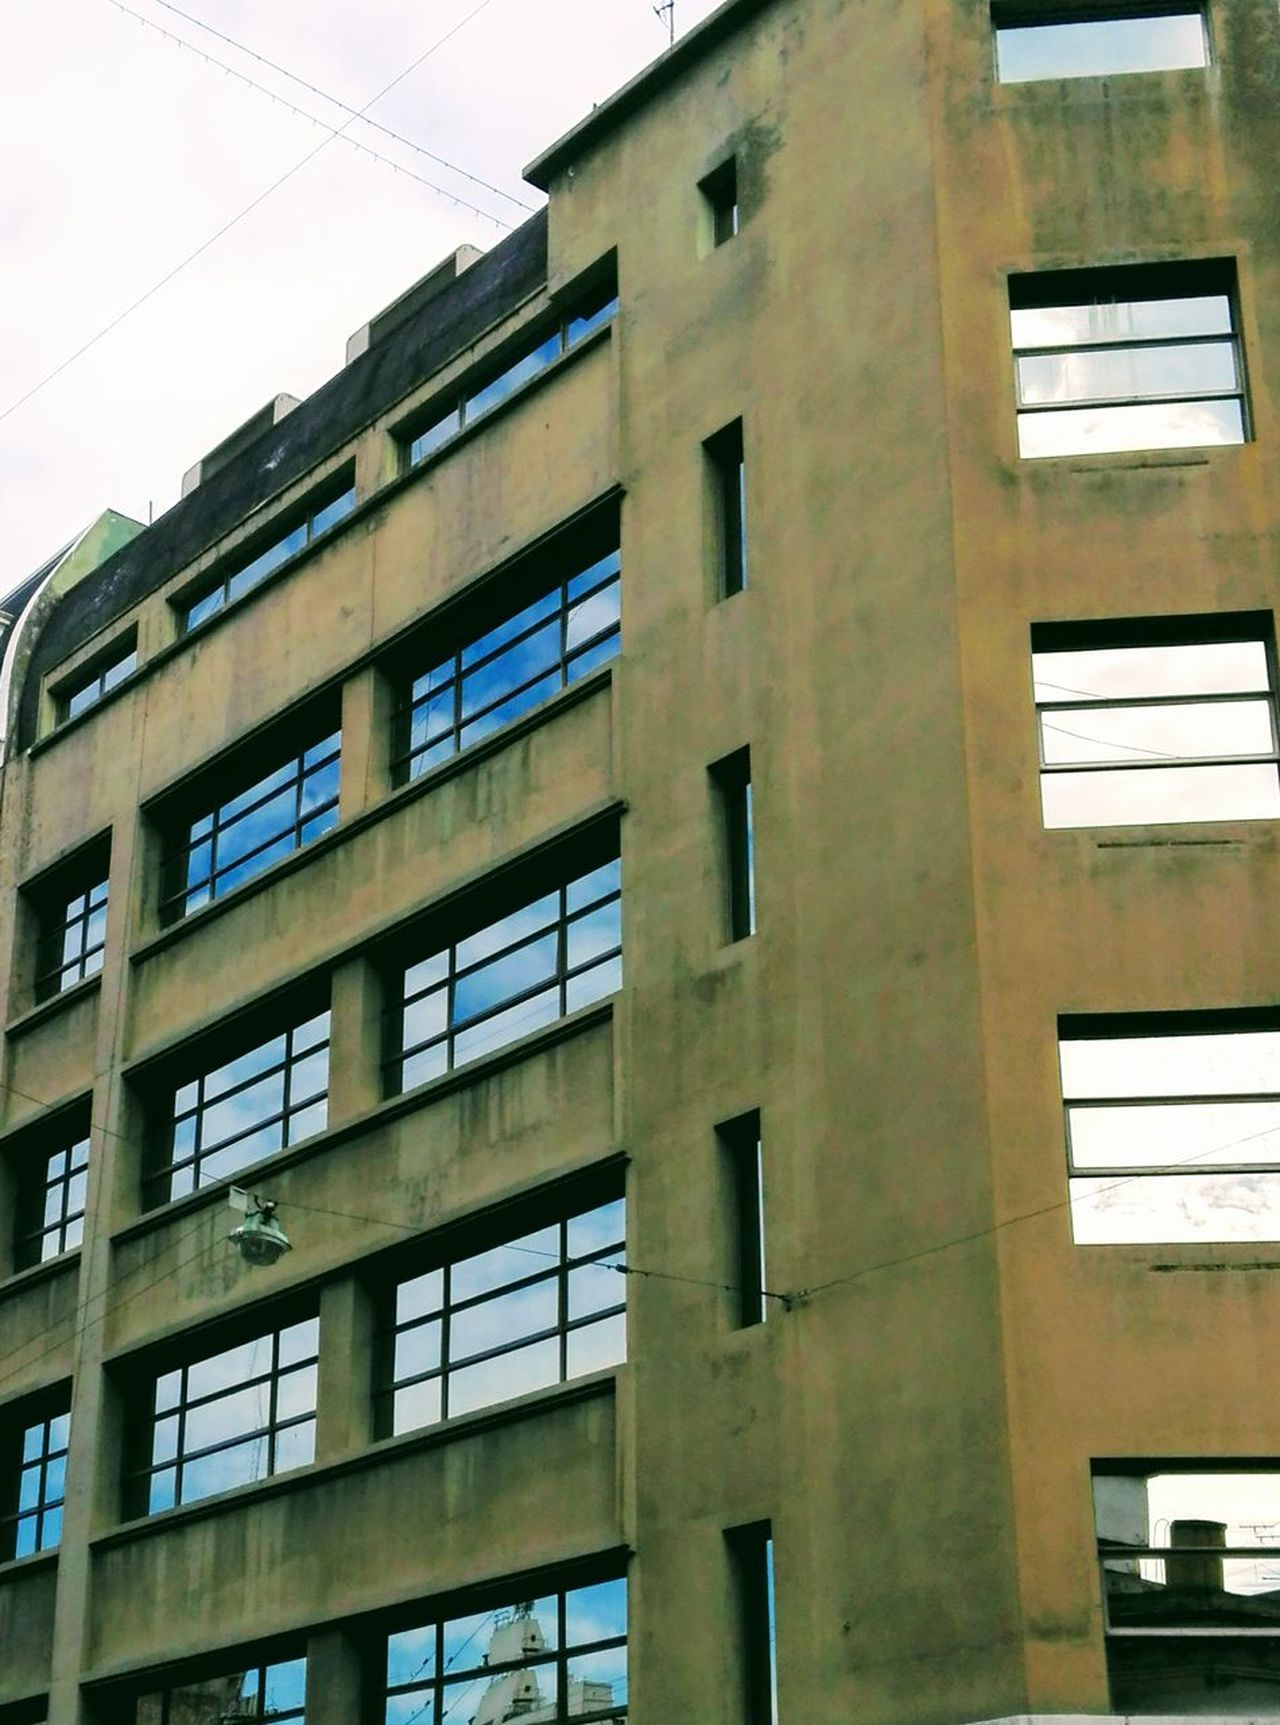 Urban Exploration Cityexplorer City Building Exterior Window Architecture Built Structure Outdoors Low Angle View Day No People Sky